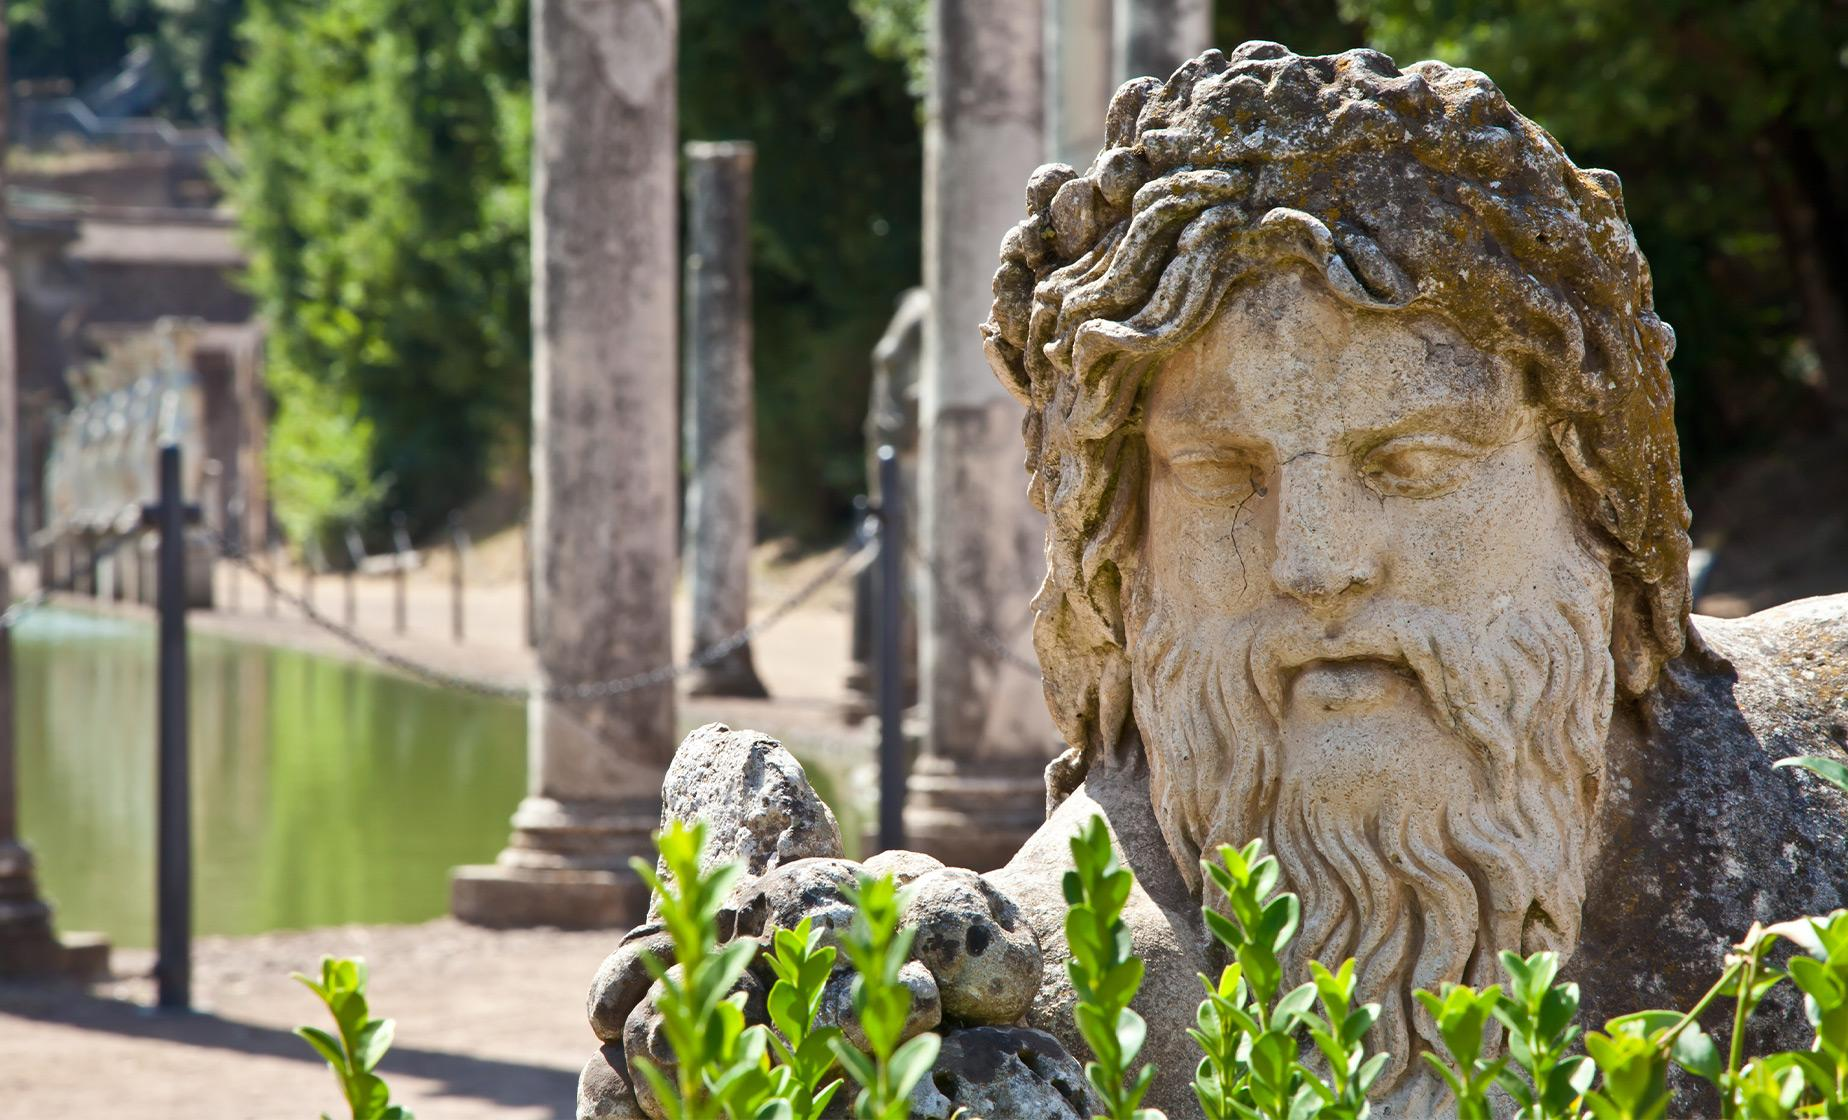 Tivoli Villa Adriana and Villa D'Este Day Trip from Rome